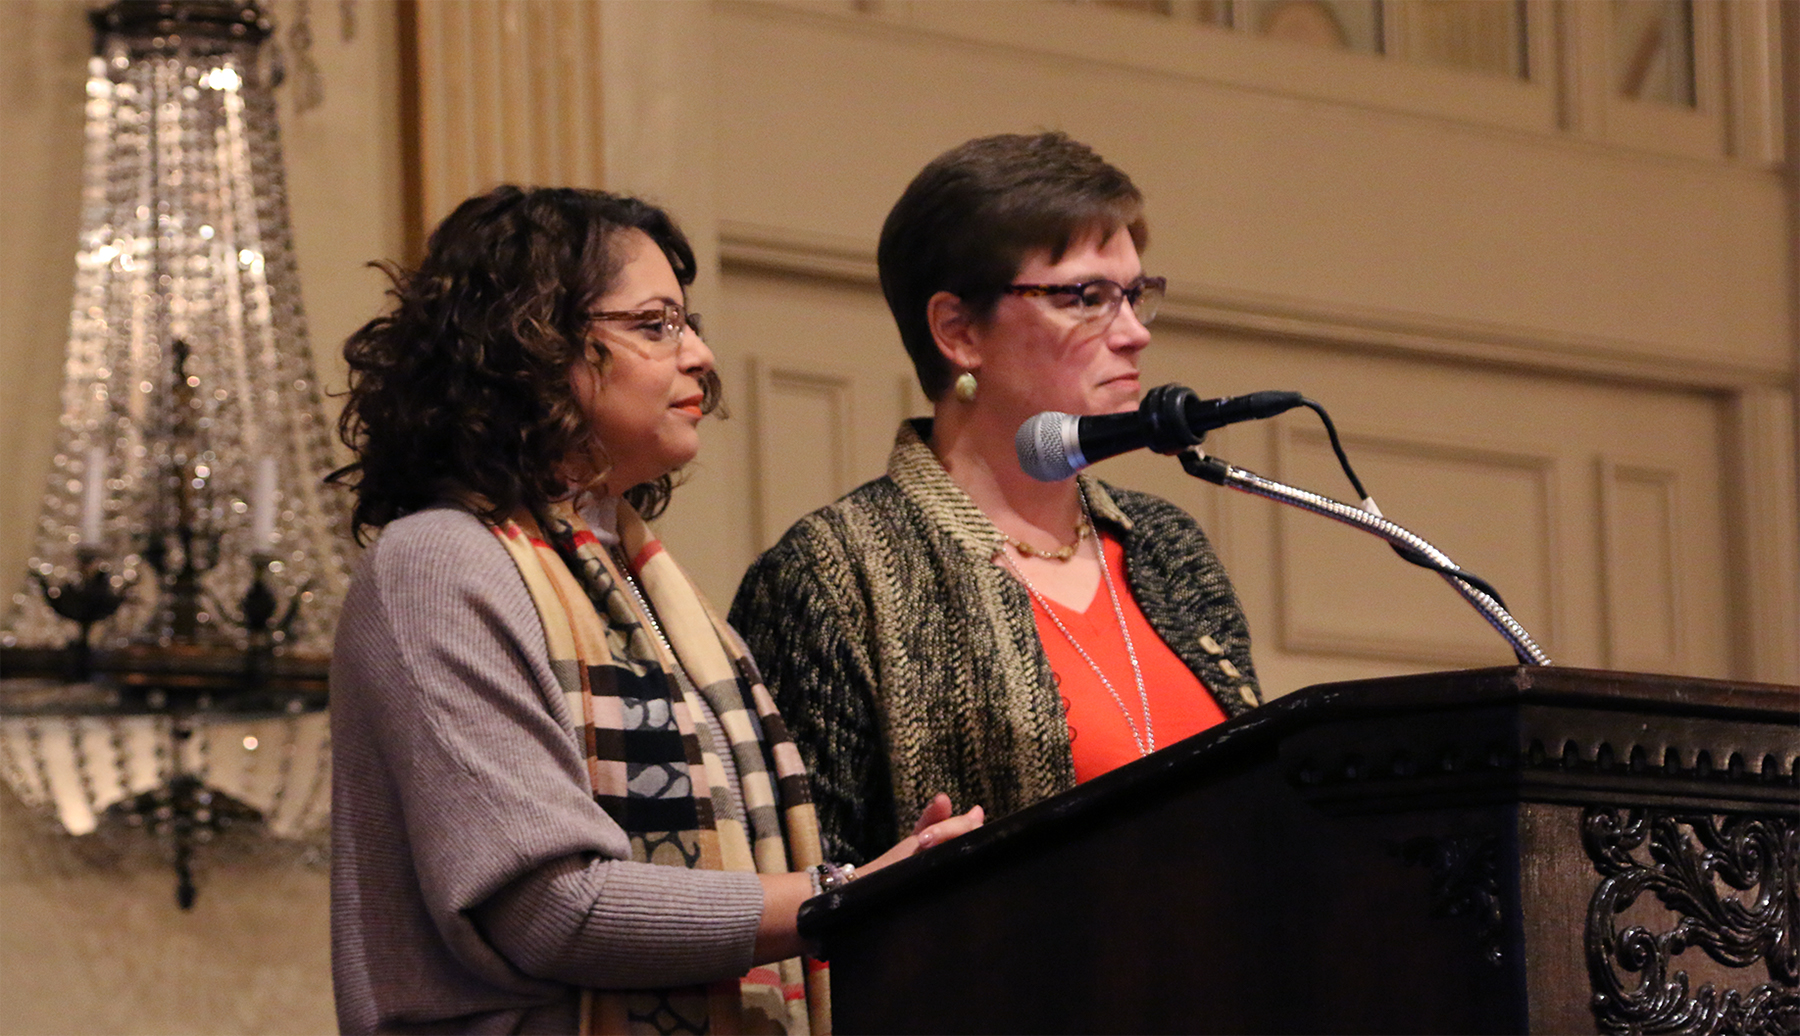 Elder Vilmarie Cintron-Olivieri and the Rev. Cindy Kohlmann, Co-Moderators of the 223rd General Assembly announce their decision to change books for their book study program at the Moderators' Conference in Louisville, Kentucky. Photo by Rick Jones.